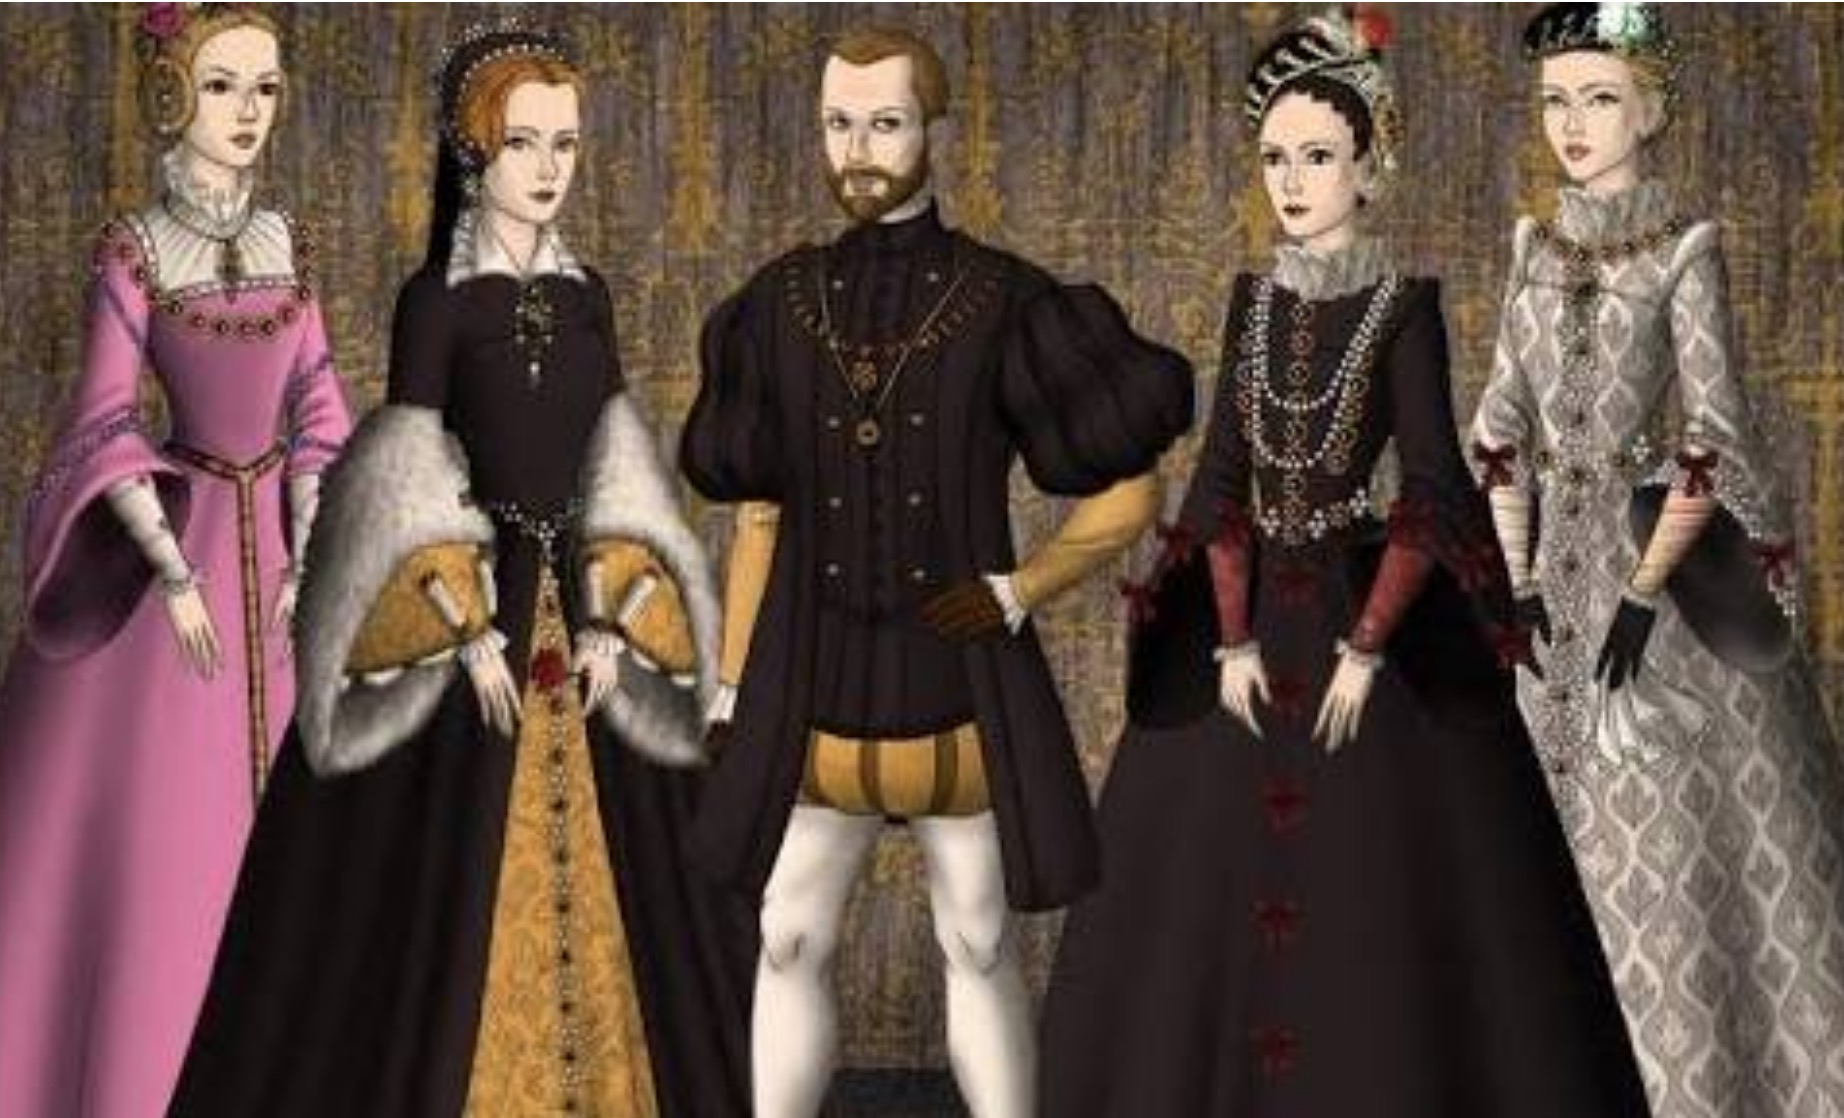 Once upon a time, there was a rich King who had four wives..